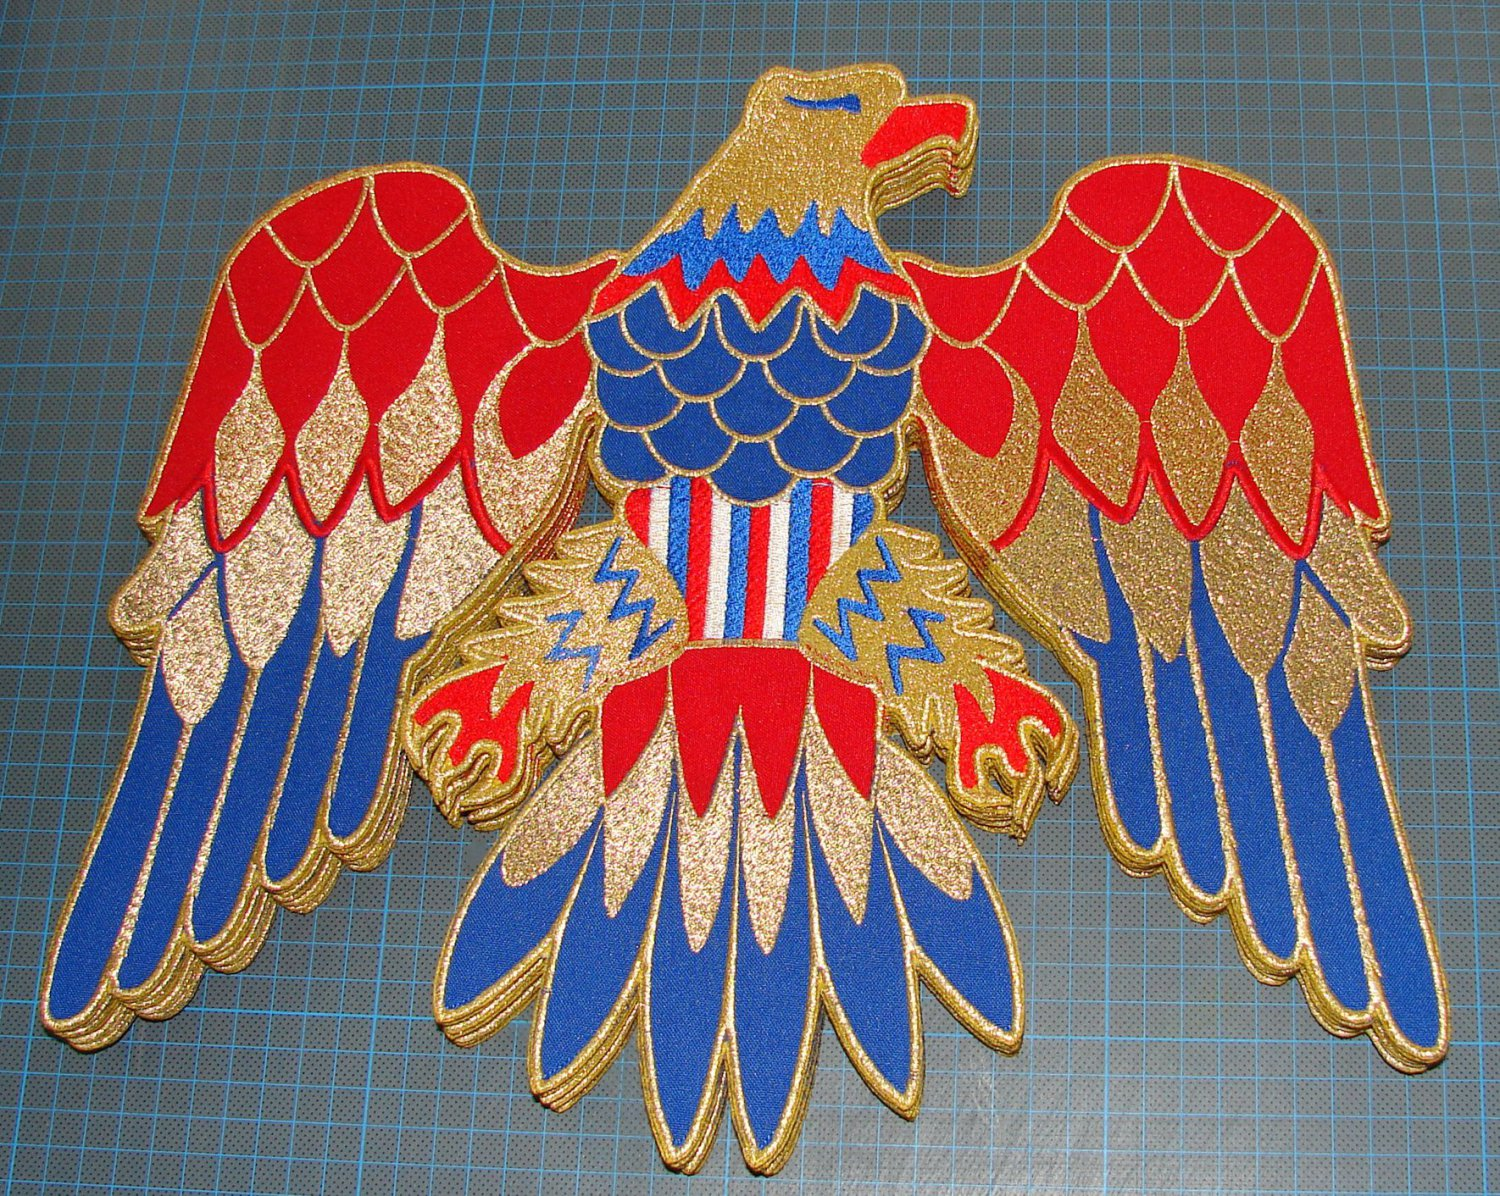 BACK PATCH Elvis Presley jumpsuit cape american eagle costume embroidery patch